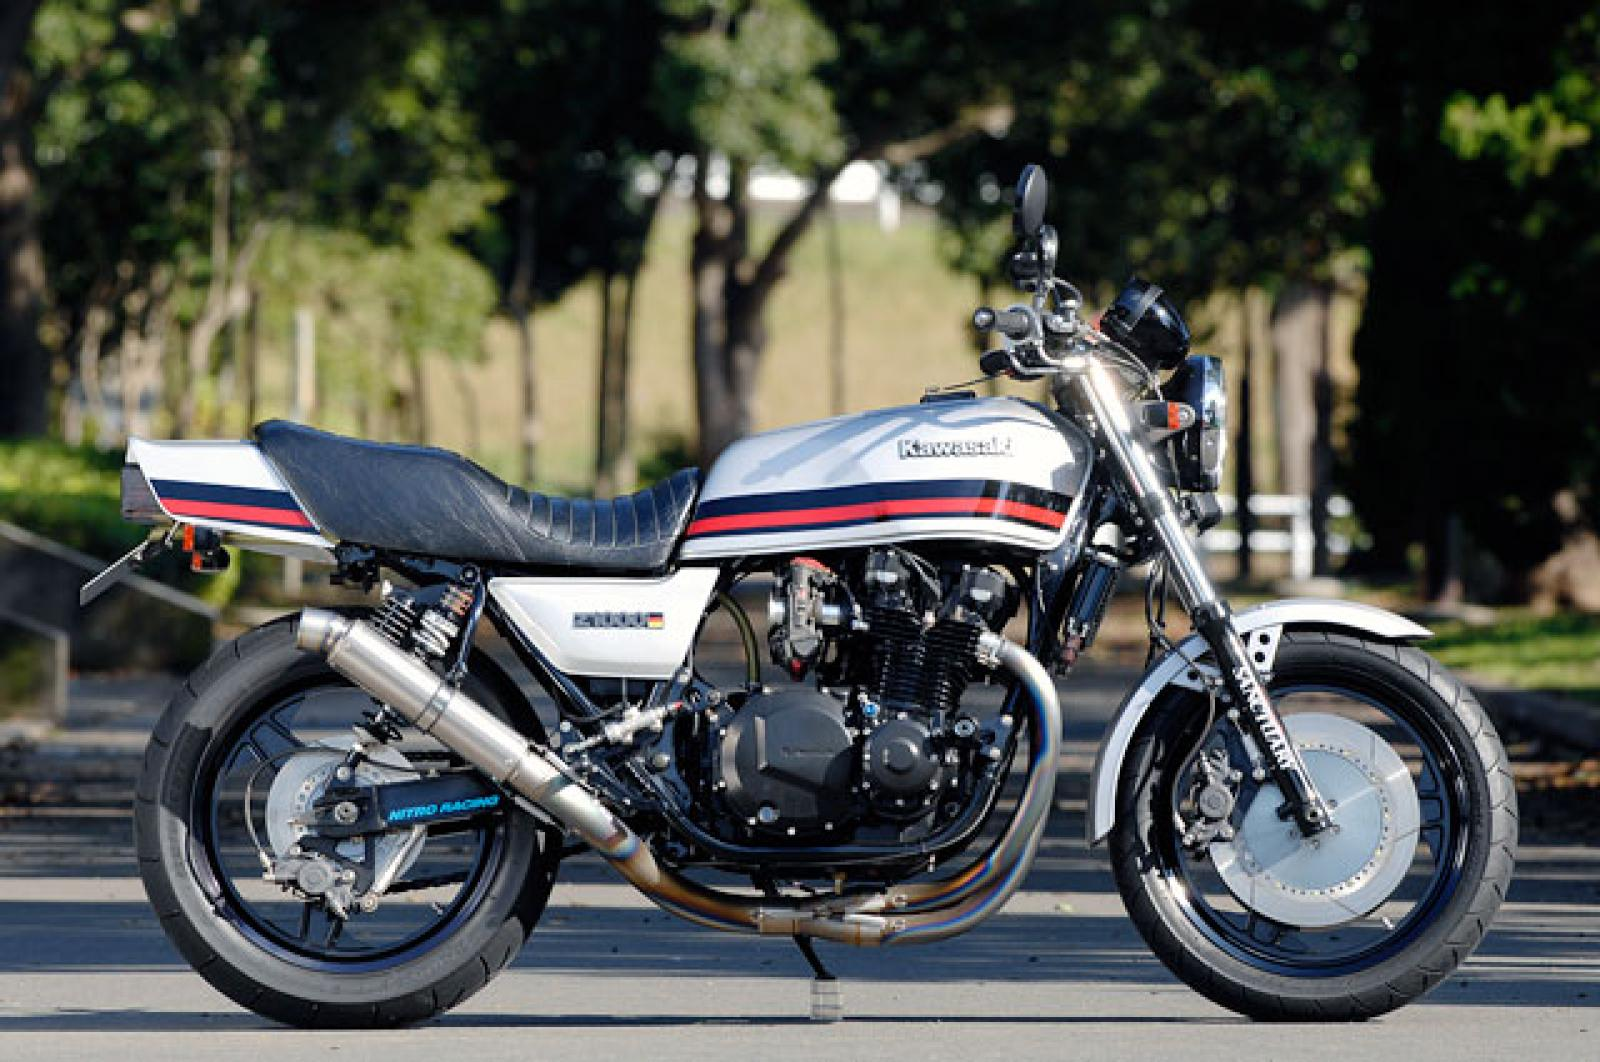 1983 Kawasaki Z1000-J3 Classic Motorcycle Pictures